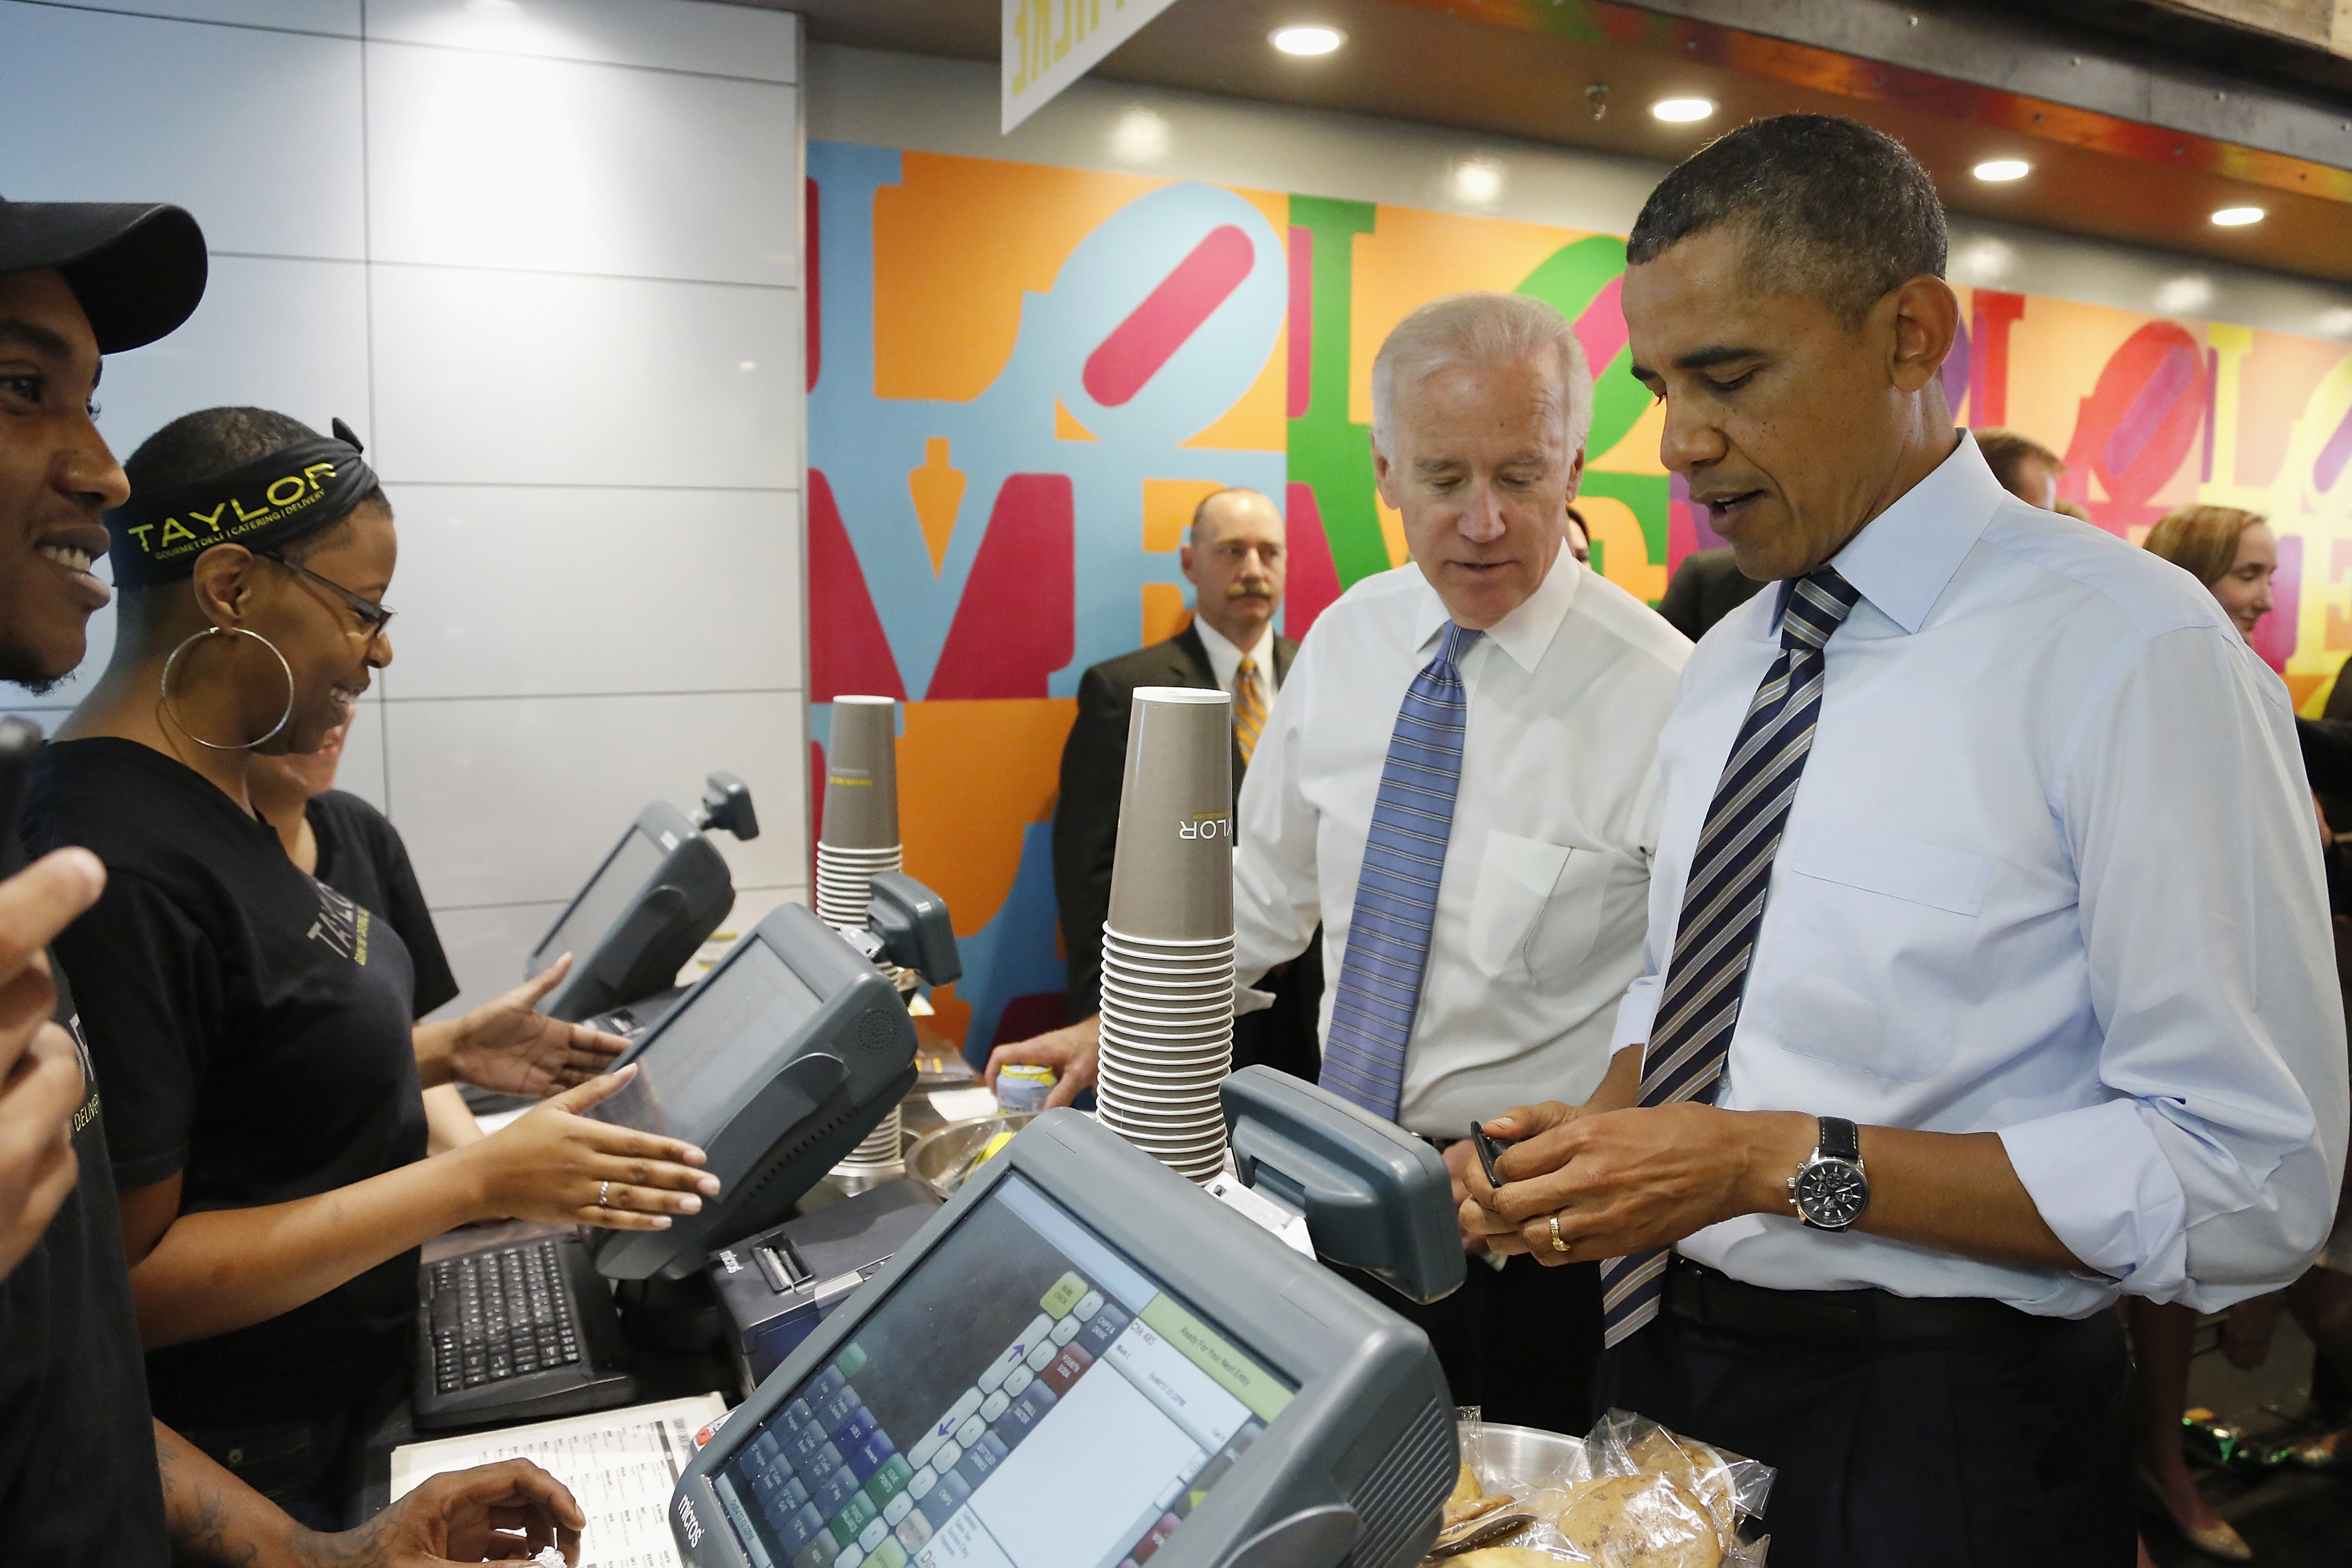 U.S. President Barack Obama (R) opens his wallet to buy lunch for himself and Vice President Joe Biden (2nd R) at a sandwich shop near the White House in Washington, October 4, 2013. House Republicans held their ground on Friday in a standoff with Ob...